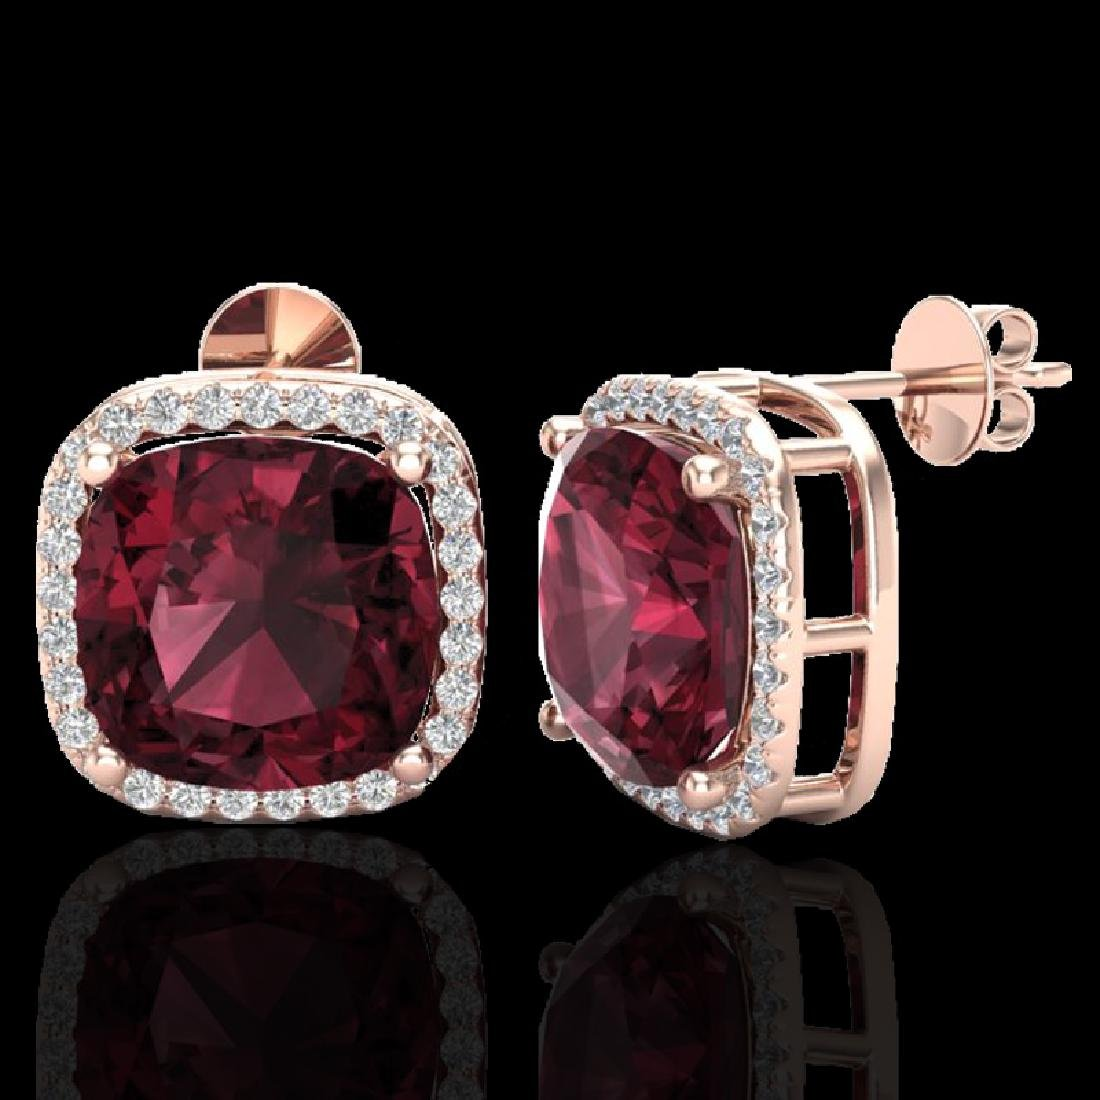 12 CTW Garnet & Micro Pave Halo VS/SI Diamond Earrings - 2